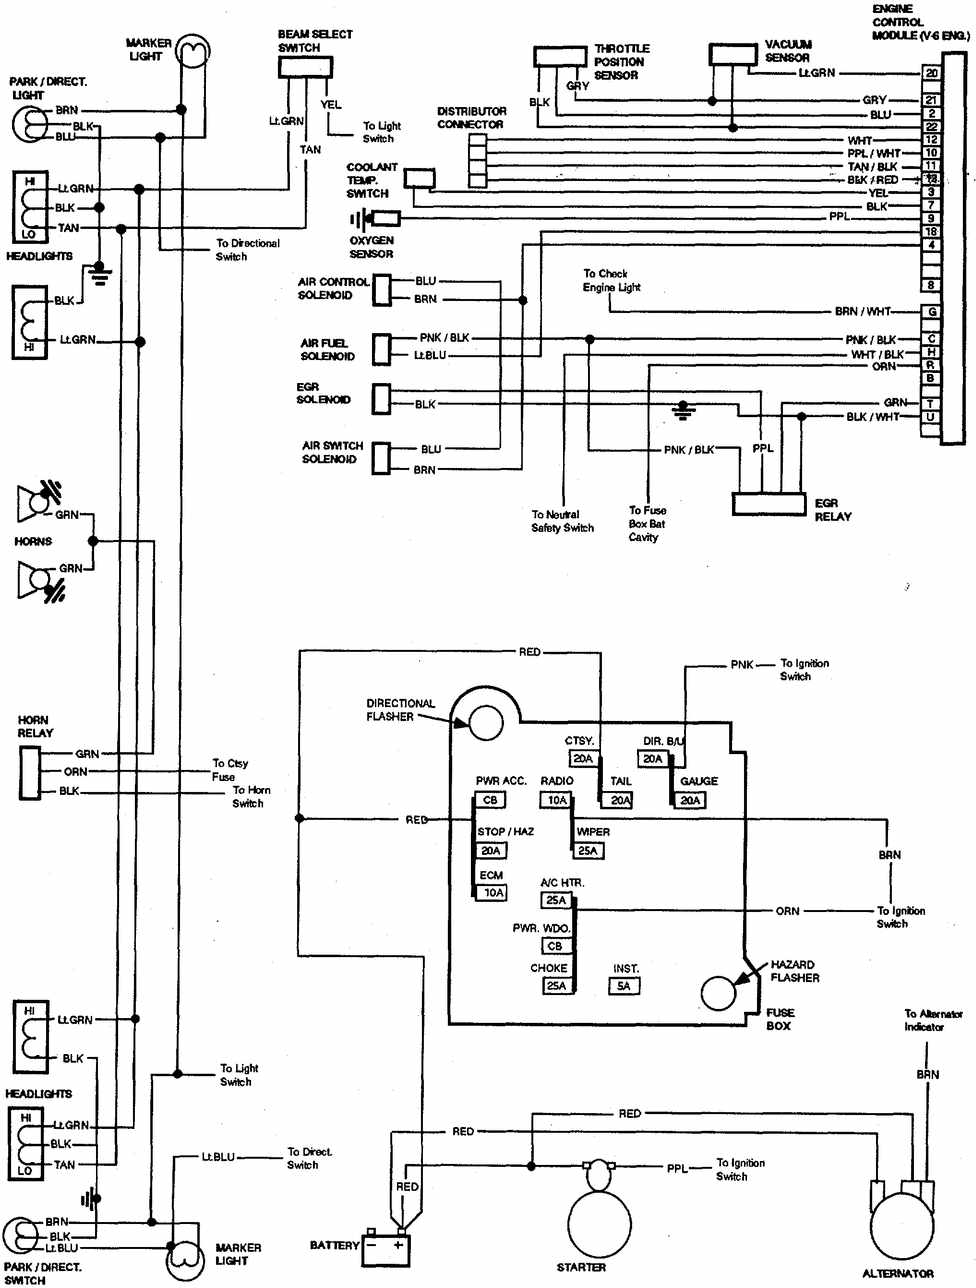 Wiring Diagrams 1999 Dodge Ram 2500 Diesel Diagram Will Be 99 Trailer Chevrolet V8 Trucks 1981 1987 Electrical 1996